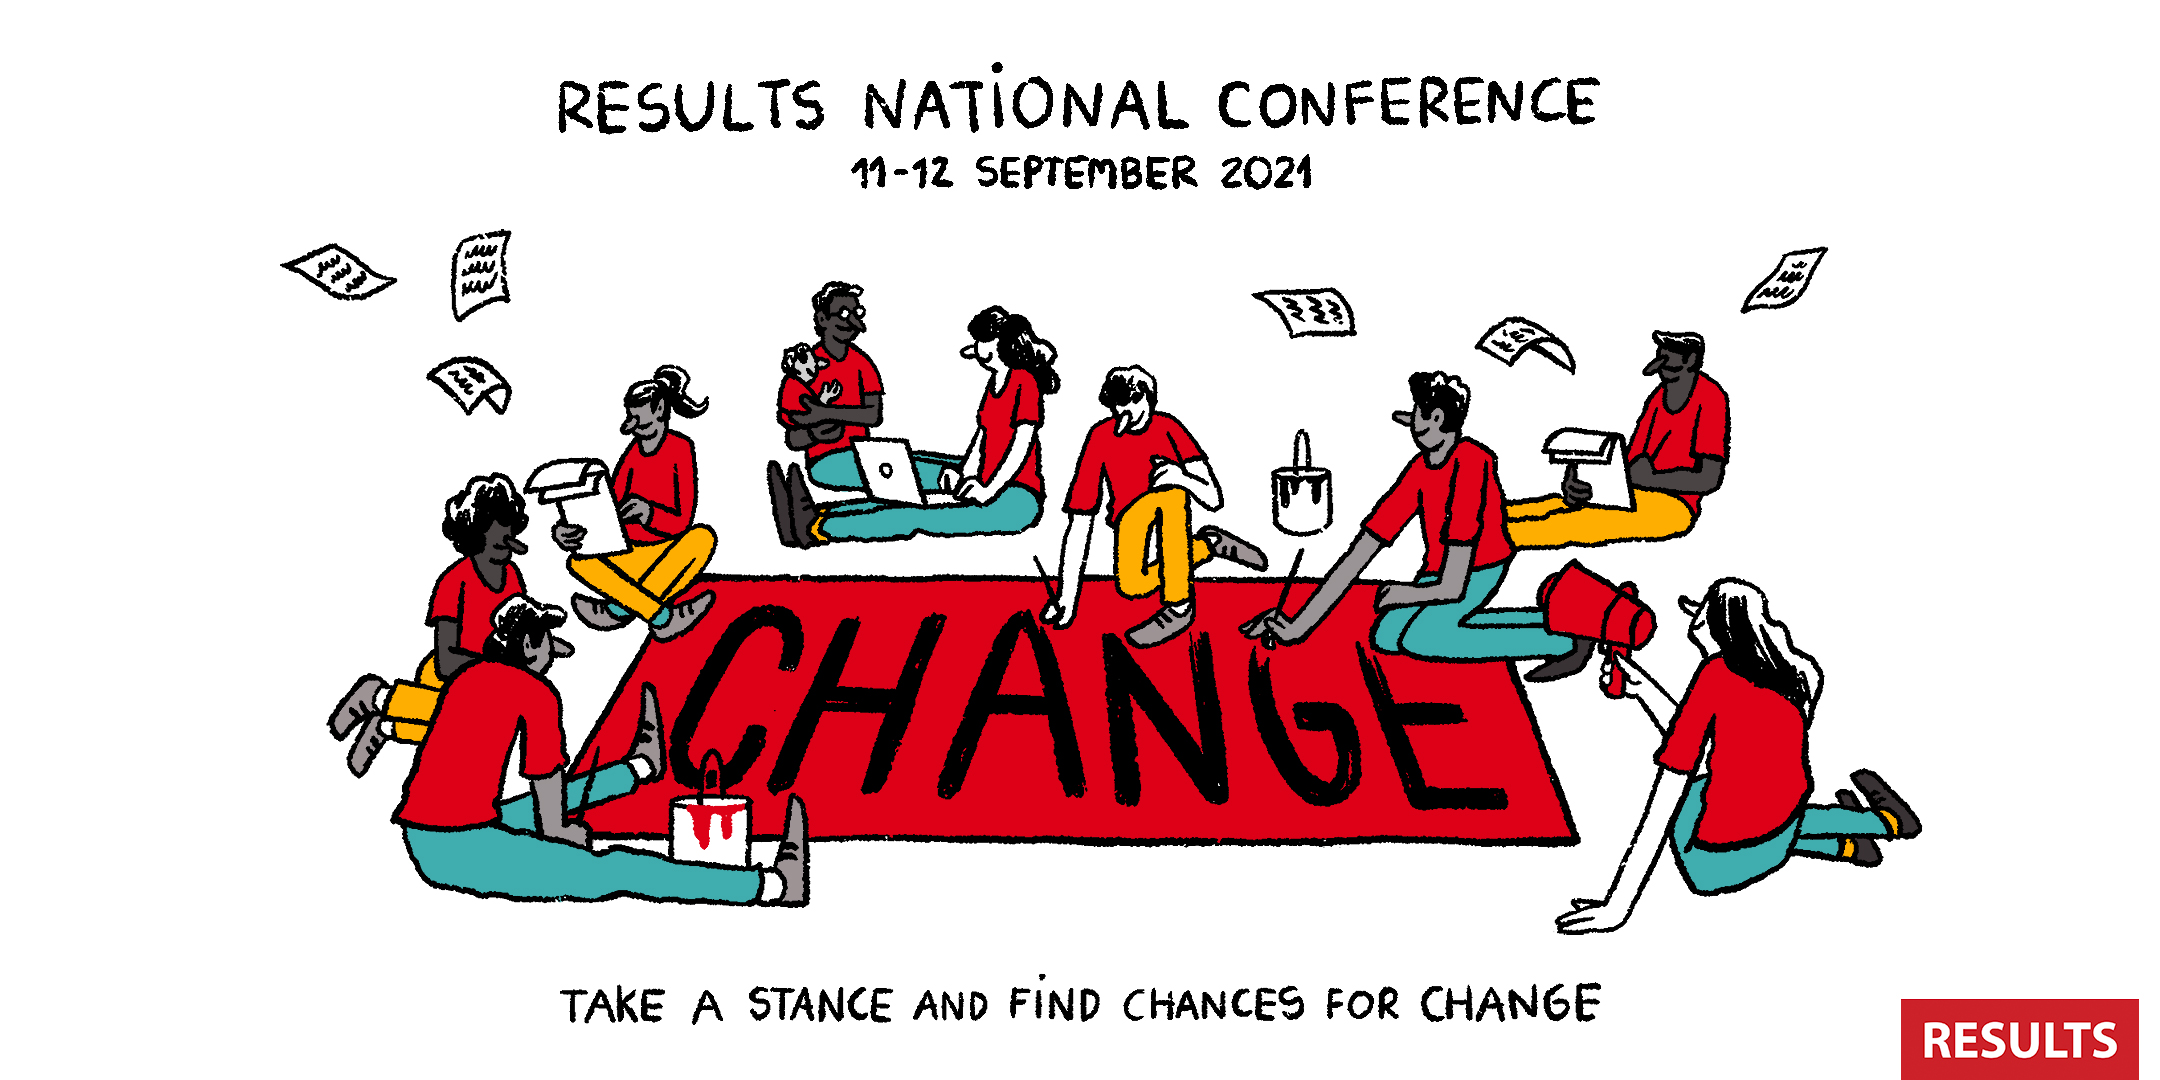 RESULTS National Conference, 11-12 September, 2021. Illustration of people sat down; one on a laptop, some write letters and others are painting a banner that says 'change'. Beneath the illustration: Take a stance and find chances for change